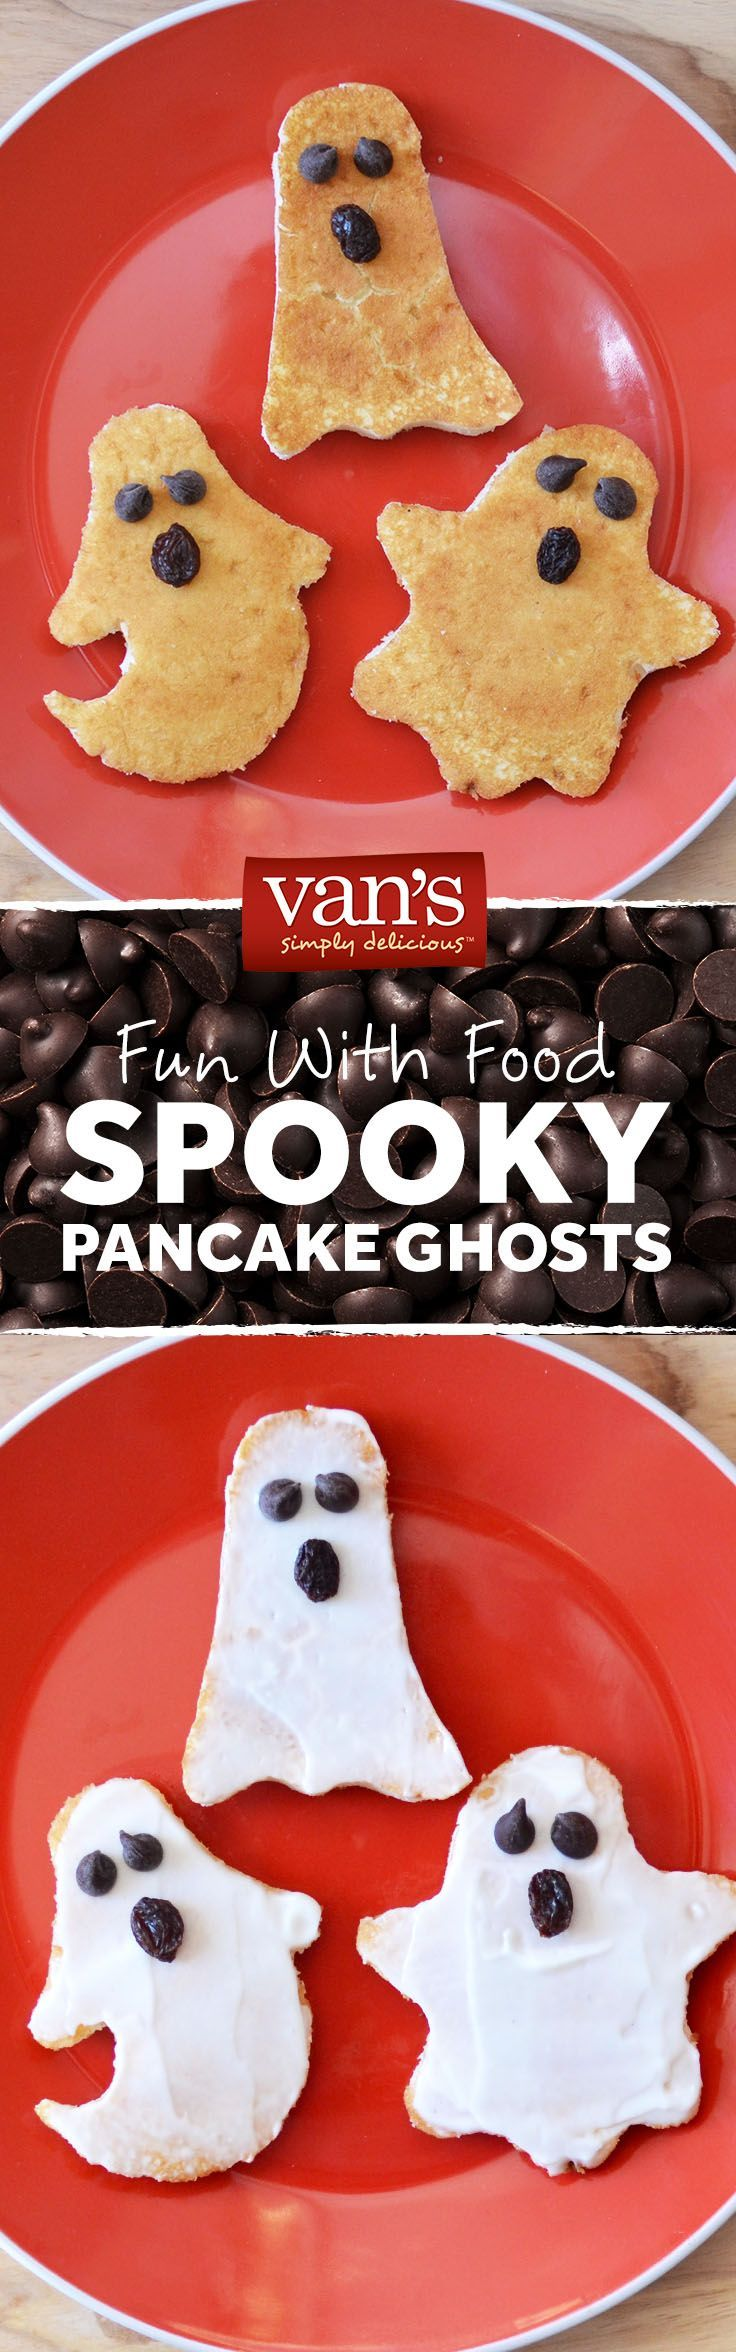 Add a little Greek yogurt to your pancakes for a spooktacular breakfast! Simply cut out your ghostly shapes and use chocolate chips and raisins and the mouth and eyes! #halloweenbreakfastforkids Add a little Greek yogurt to your pancakes for a spooktacular breakfast! Simply cut out your ghostly shapes and use chocolate chips and raisins and the mouth and eyes! #halloweenbreakfastforkids